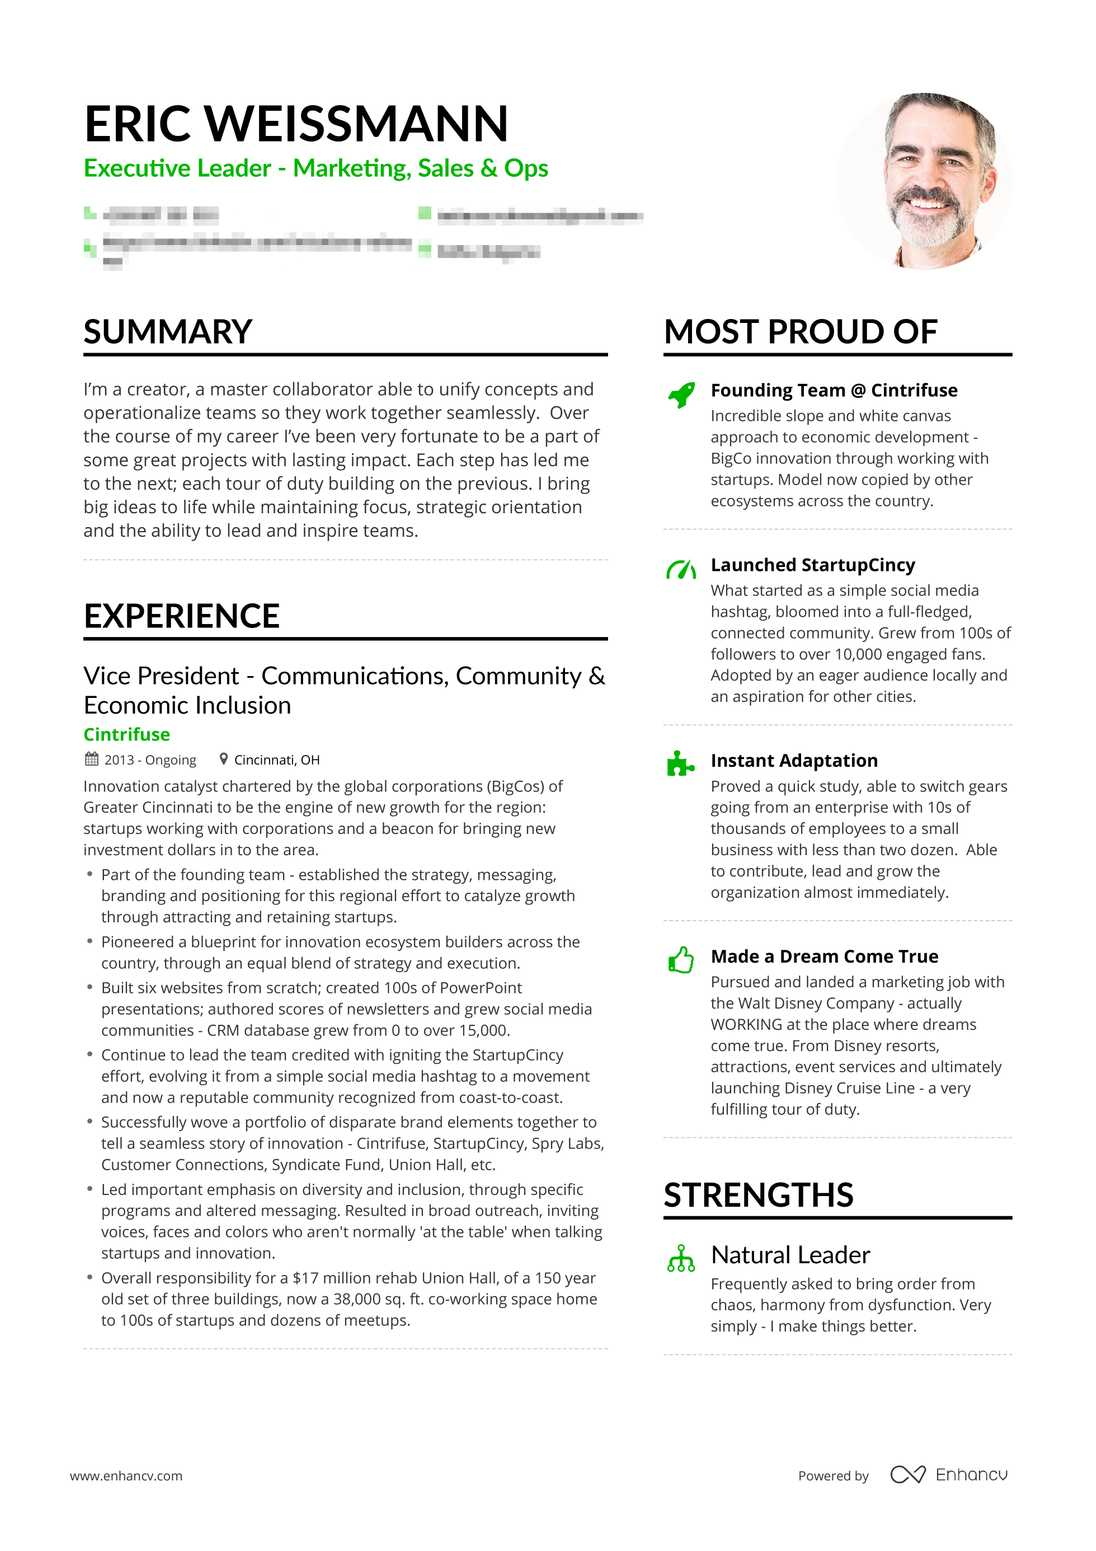 Real Marketing Executive Resume Example | Enhancv